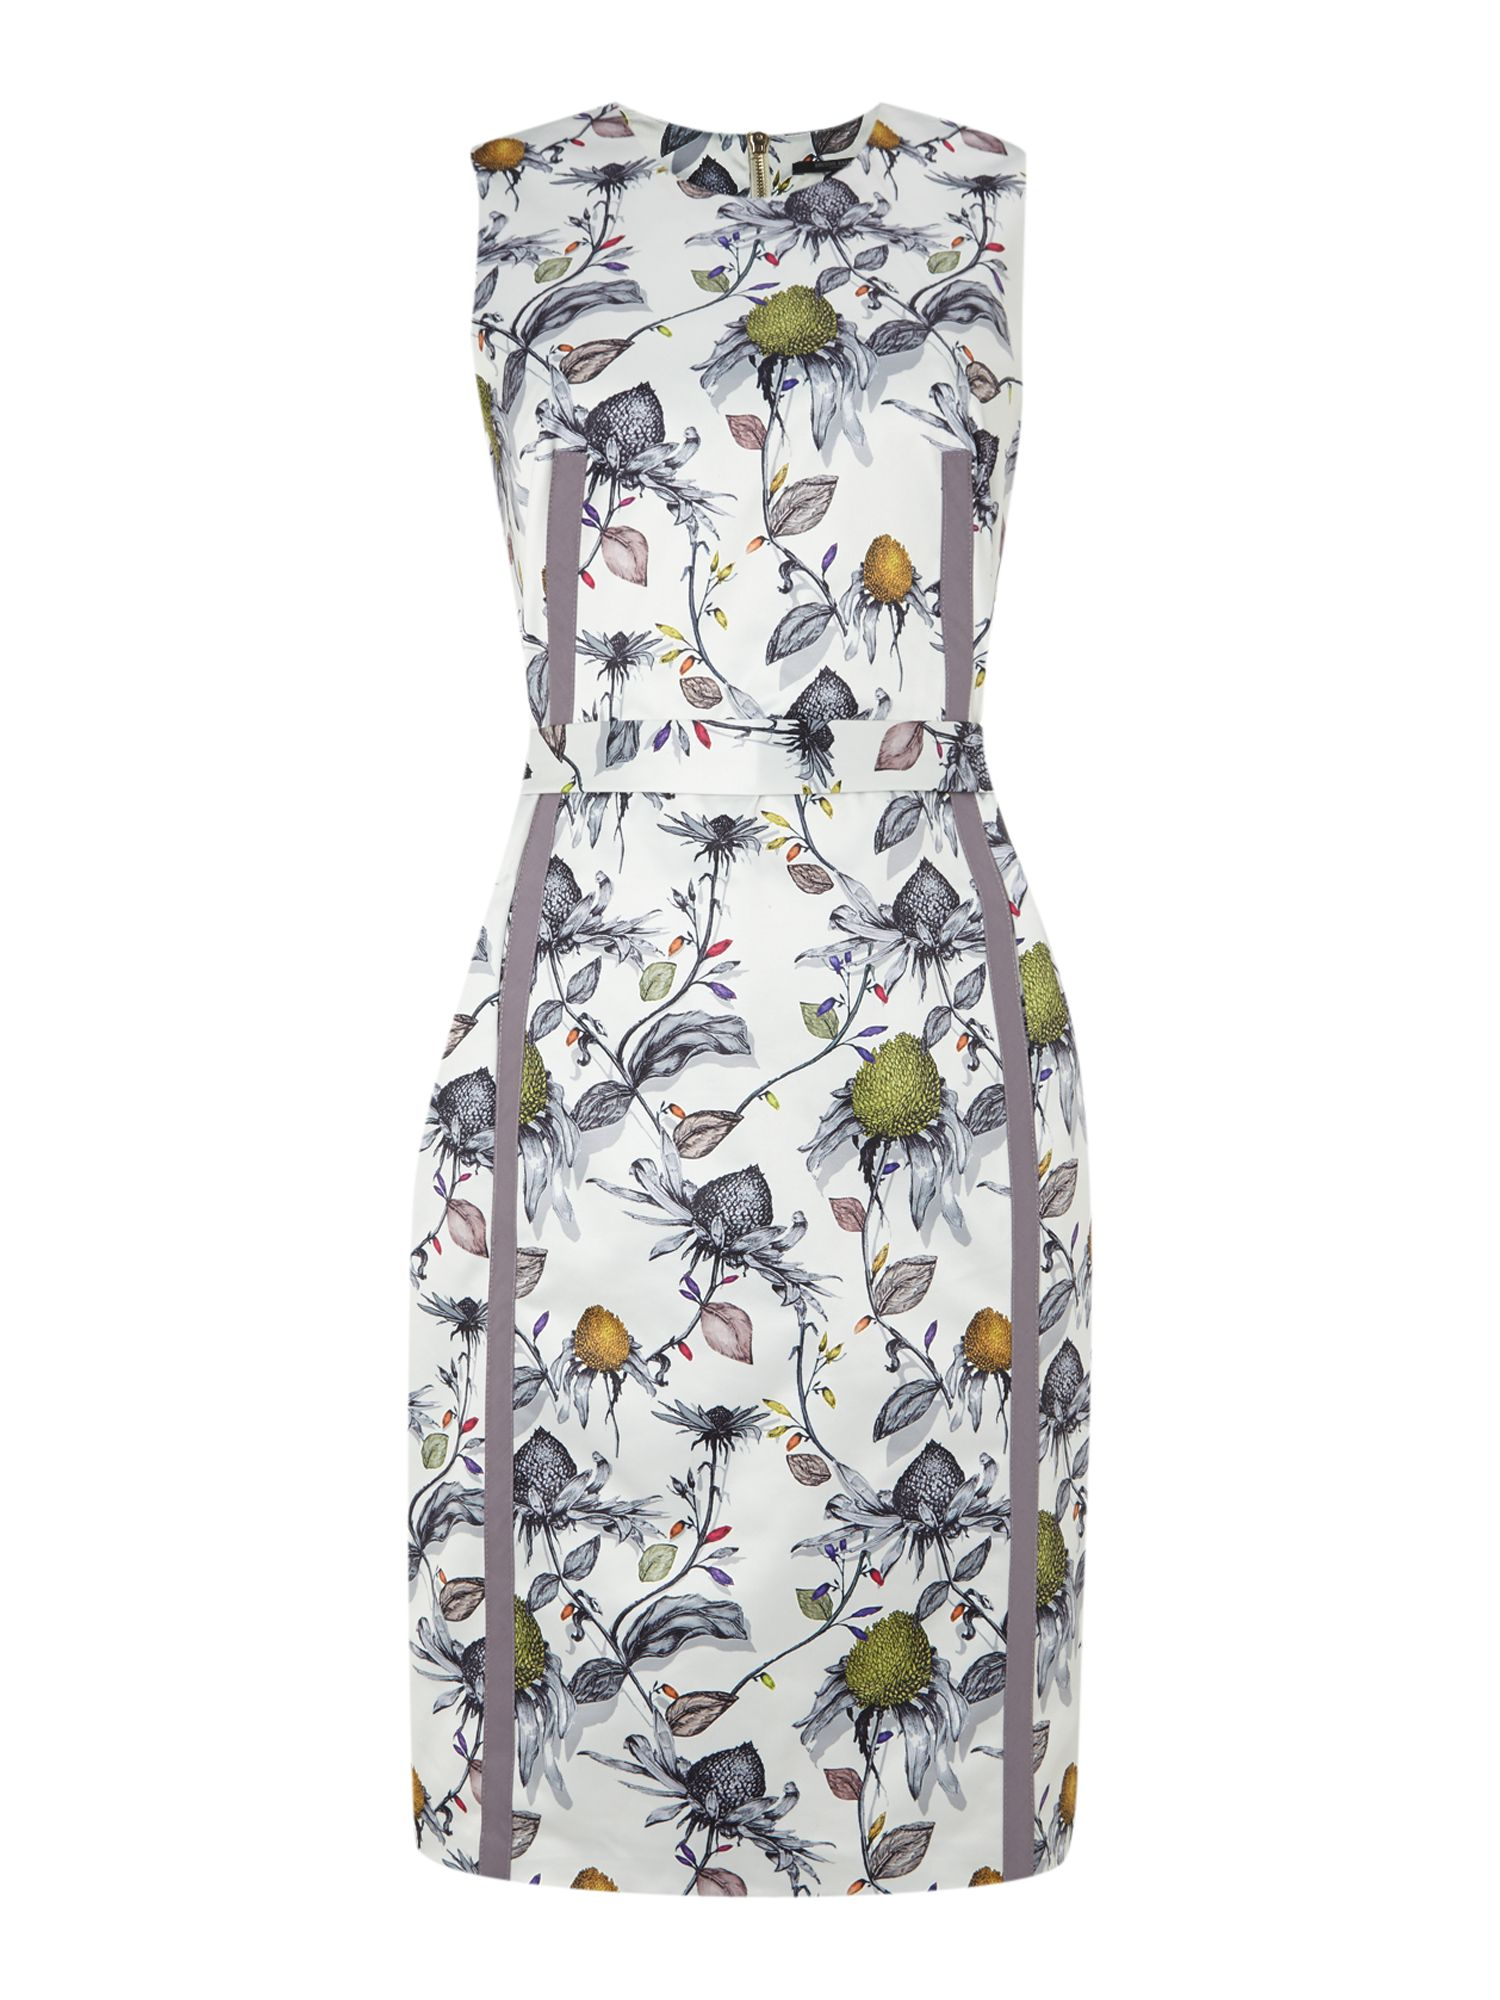 Sleevless digitial print dress